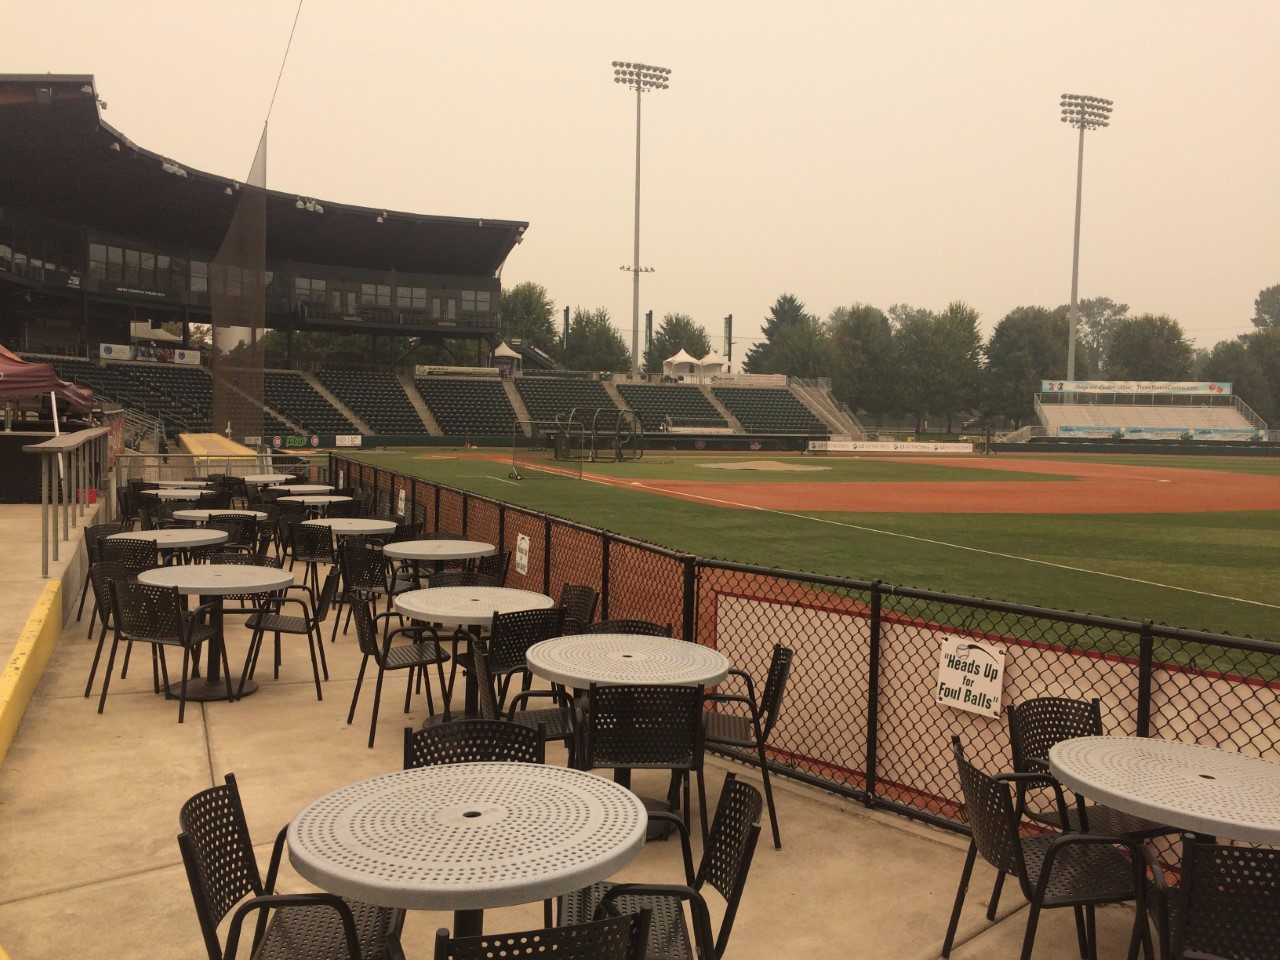 The Eugene Emeralds were forced to postpone their playoff game scheduled for Tuesday night vs. Hillsboro due to smoke.